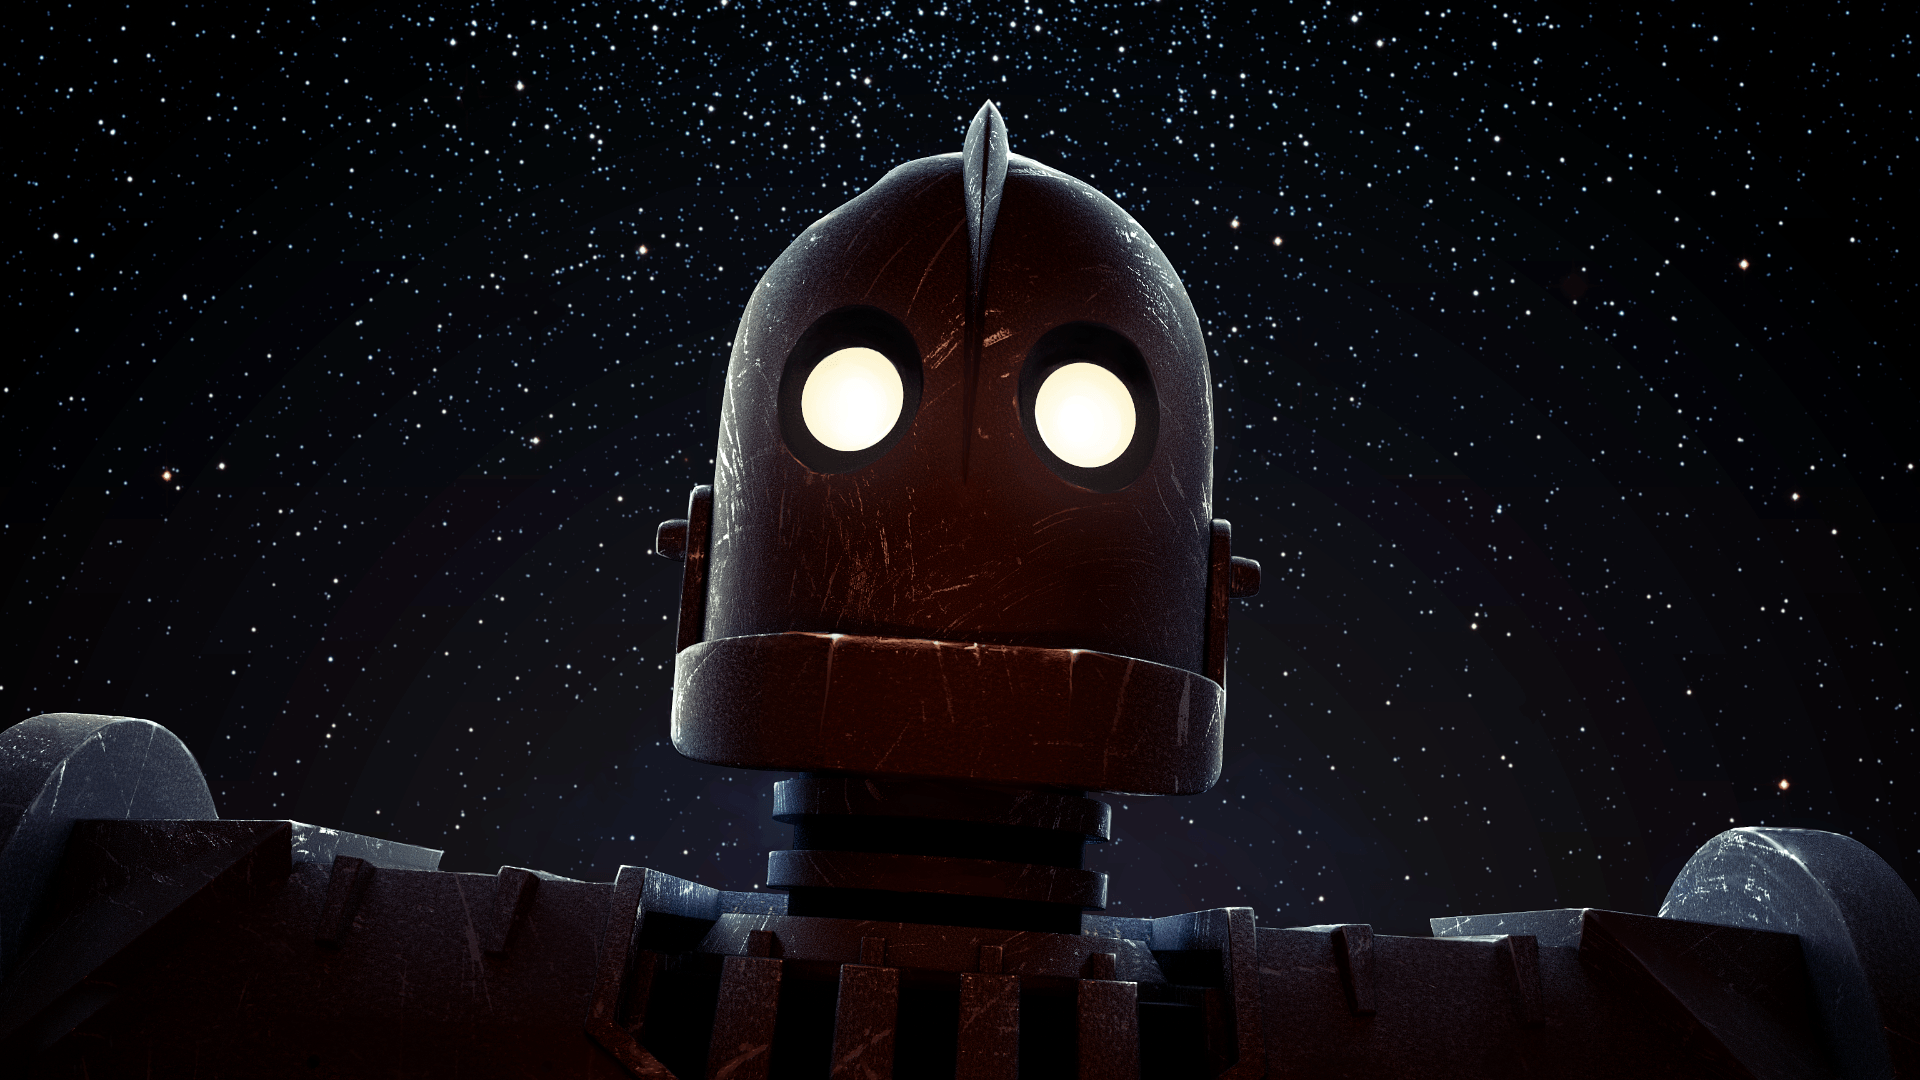 The Iron Giant Wallpapers